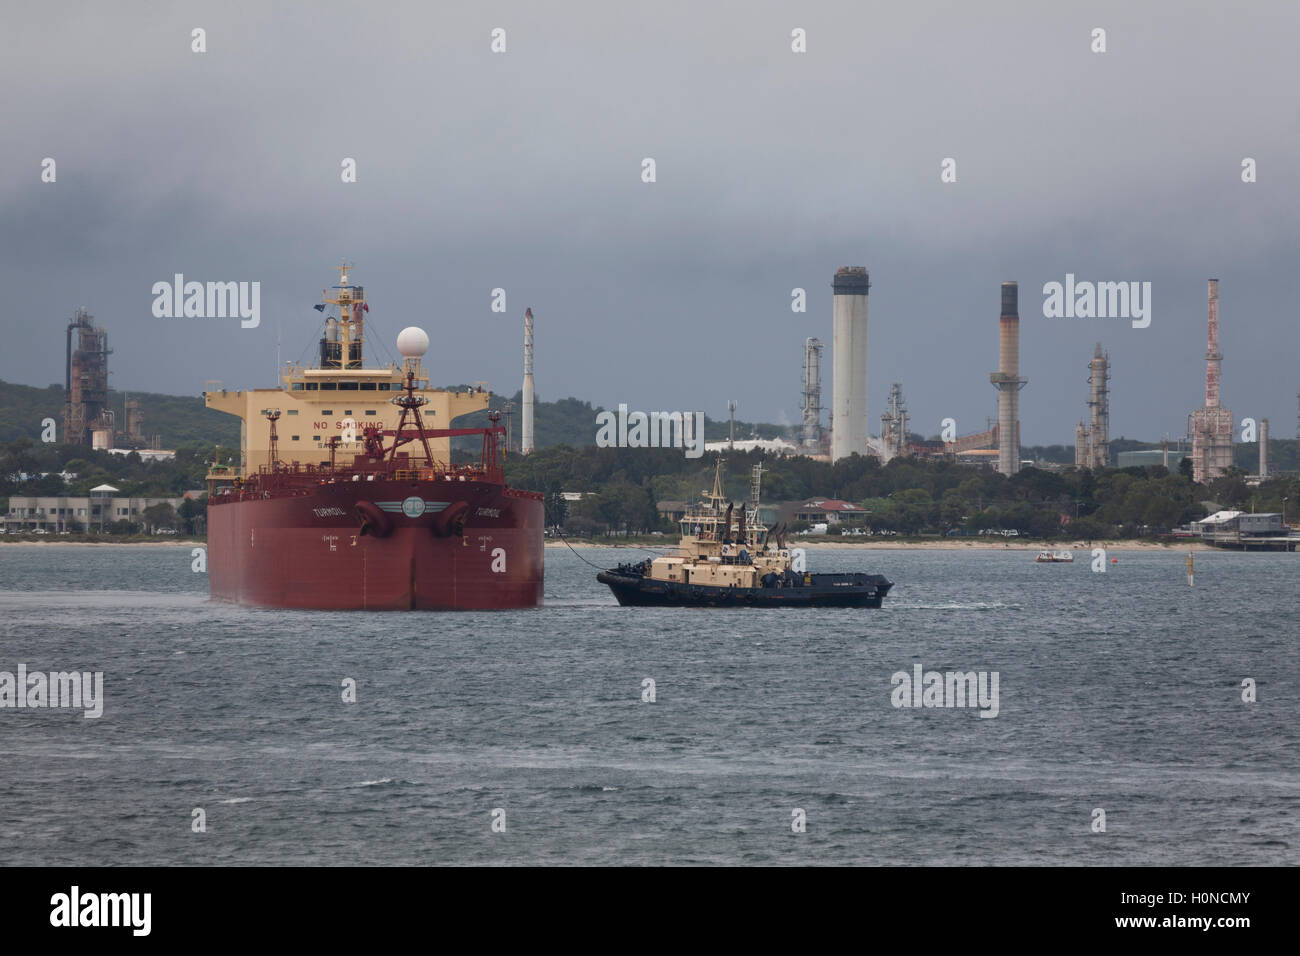 The fully loaded Turmoil Bulk Fuel Tanker arriving with the assistance of harbour tugboats at Kurnell Oil Refinery - Stock Image